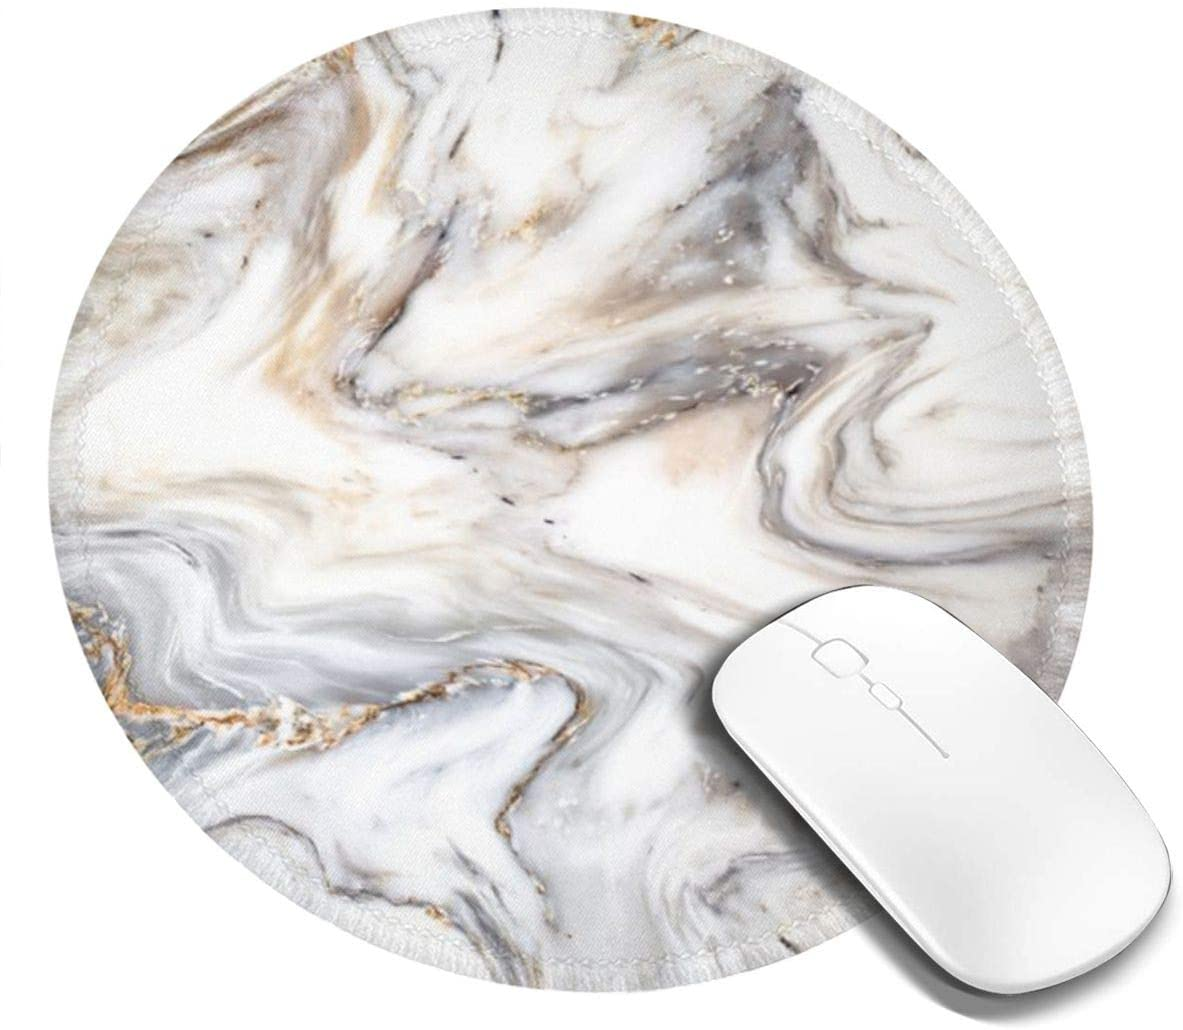 Abstract Marble Ink Texture Office Round Mouse Pad Non-Slip Rubber Base Mouse Mat for Laptop Computers Gaming Mousepad 7.9x7.9 Inch